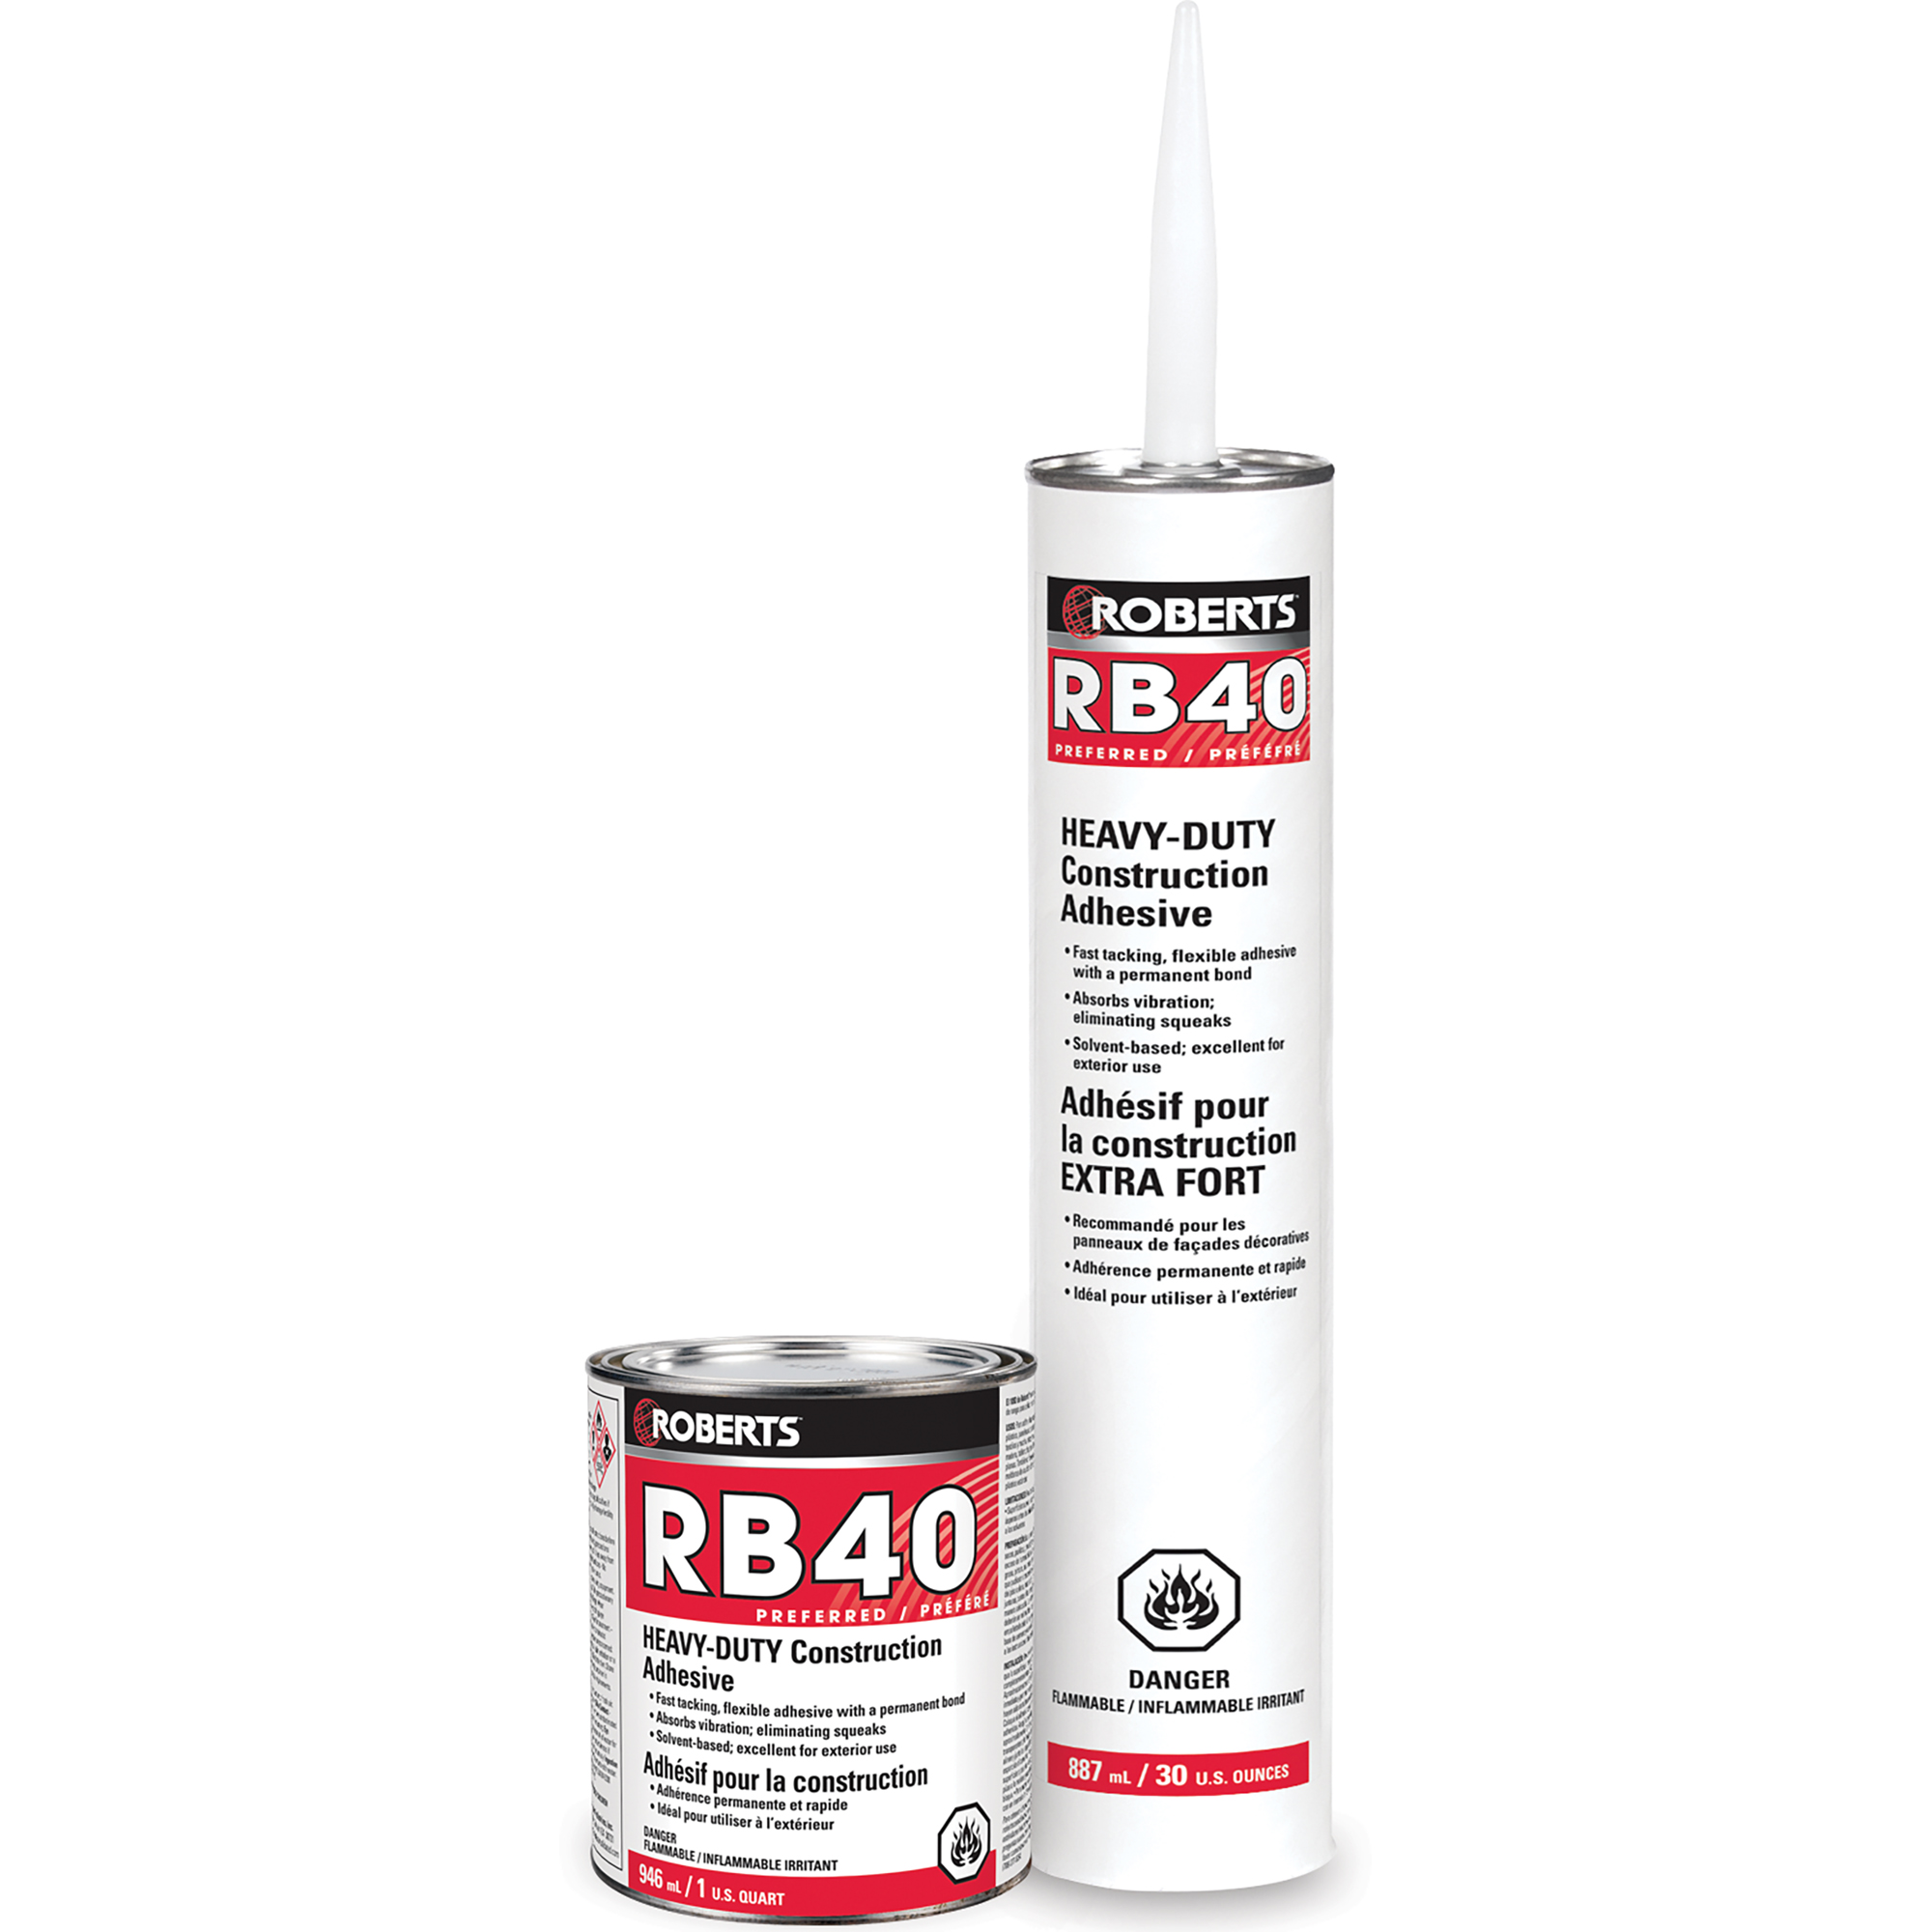 <br><em>(DISCONTINUED)</em></br>HEAVY-DUTY Construction Adhesive